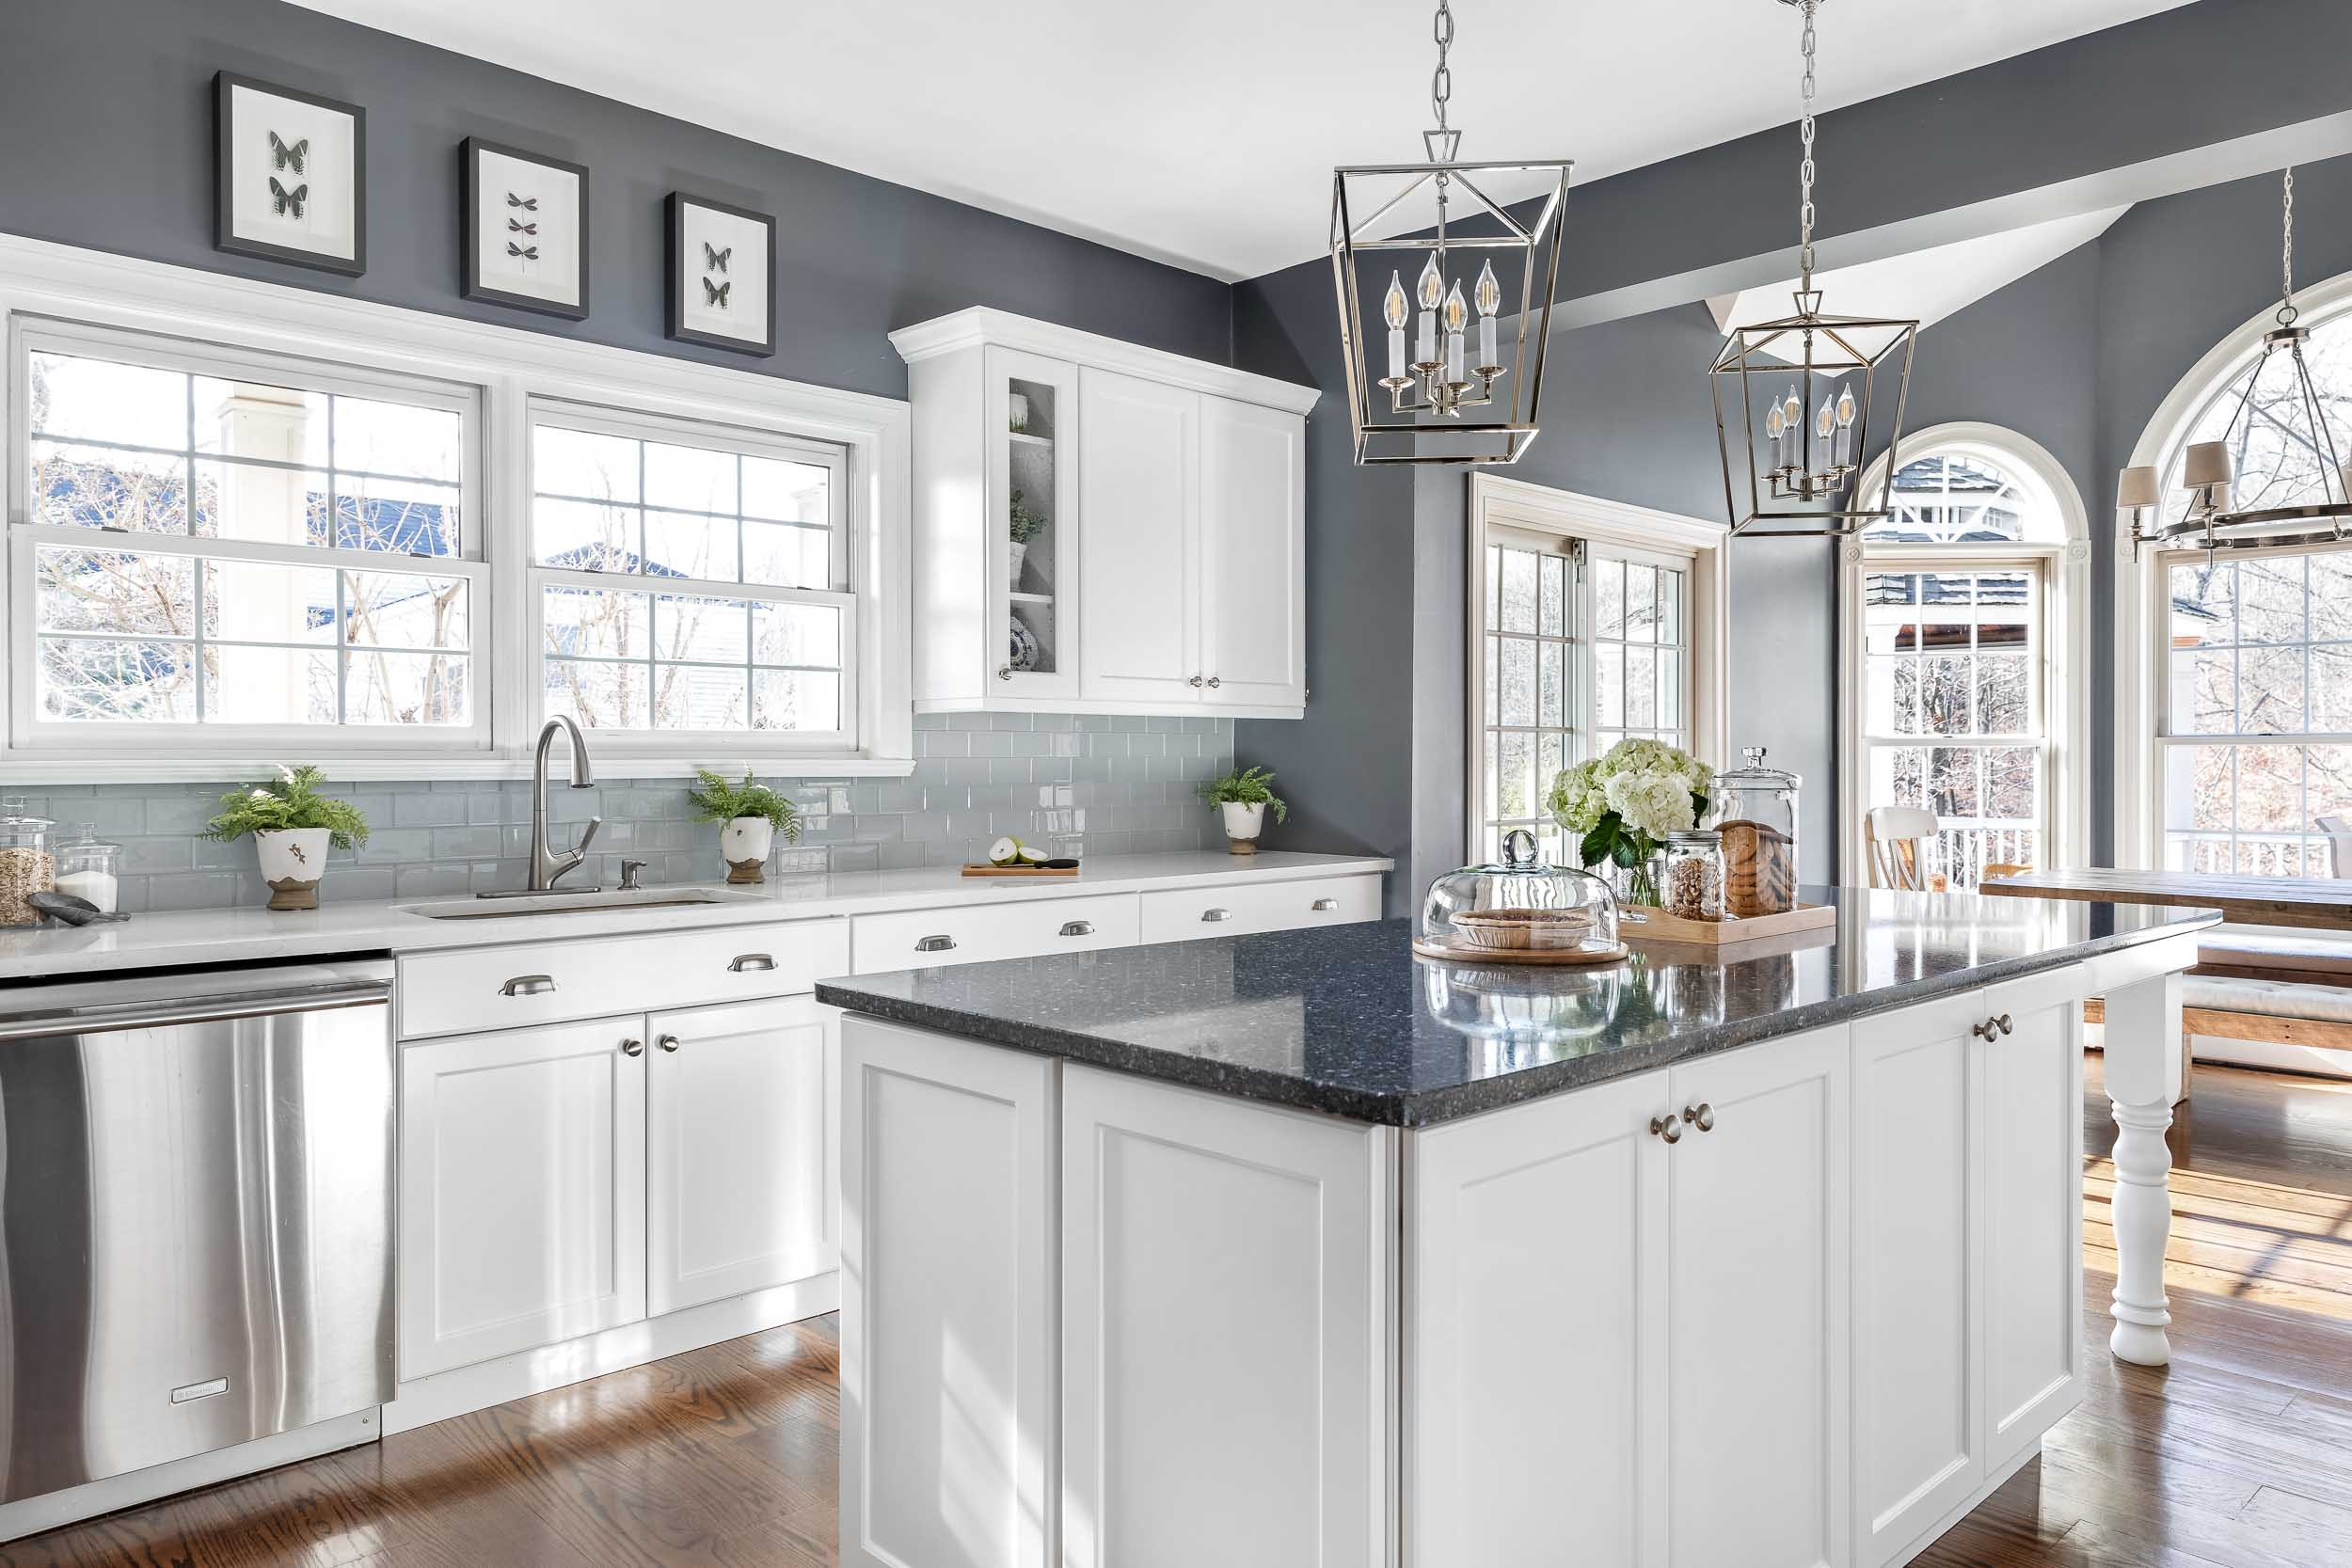 Architectural interiors photography of a rennovated kitchen in Nyack, NY.